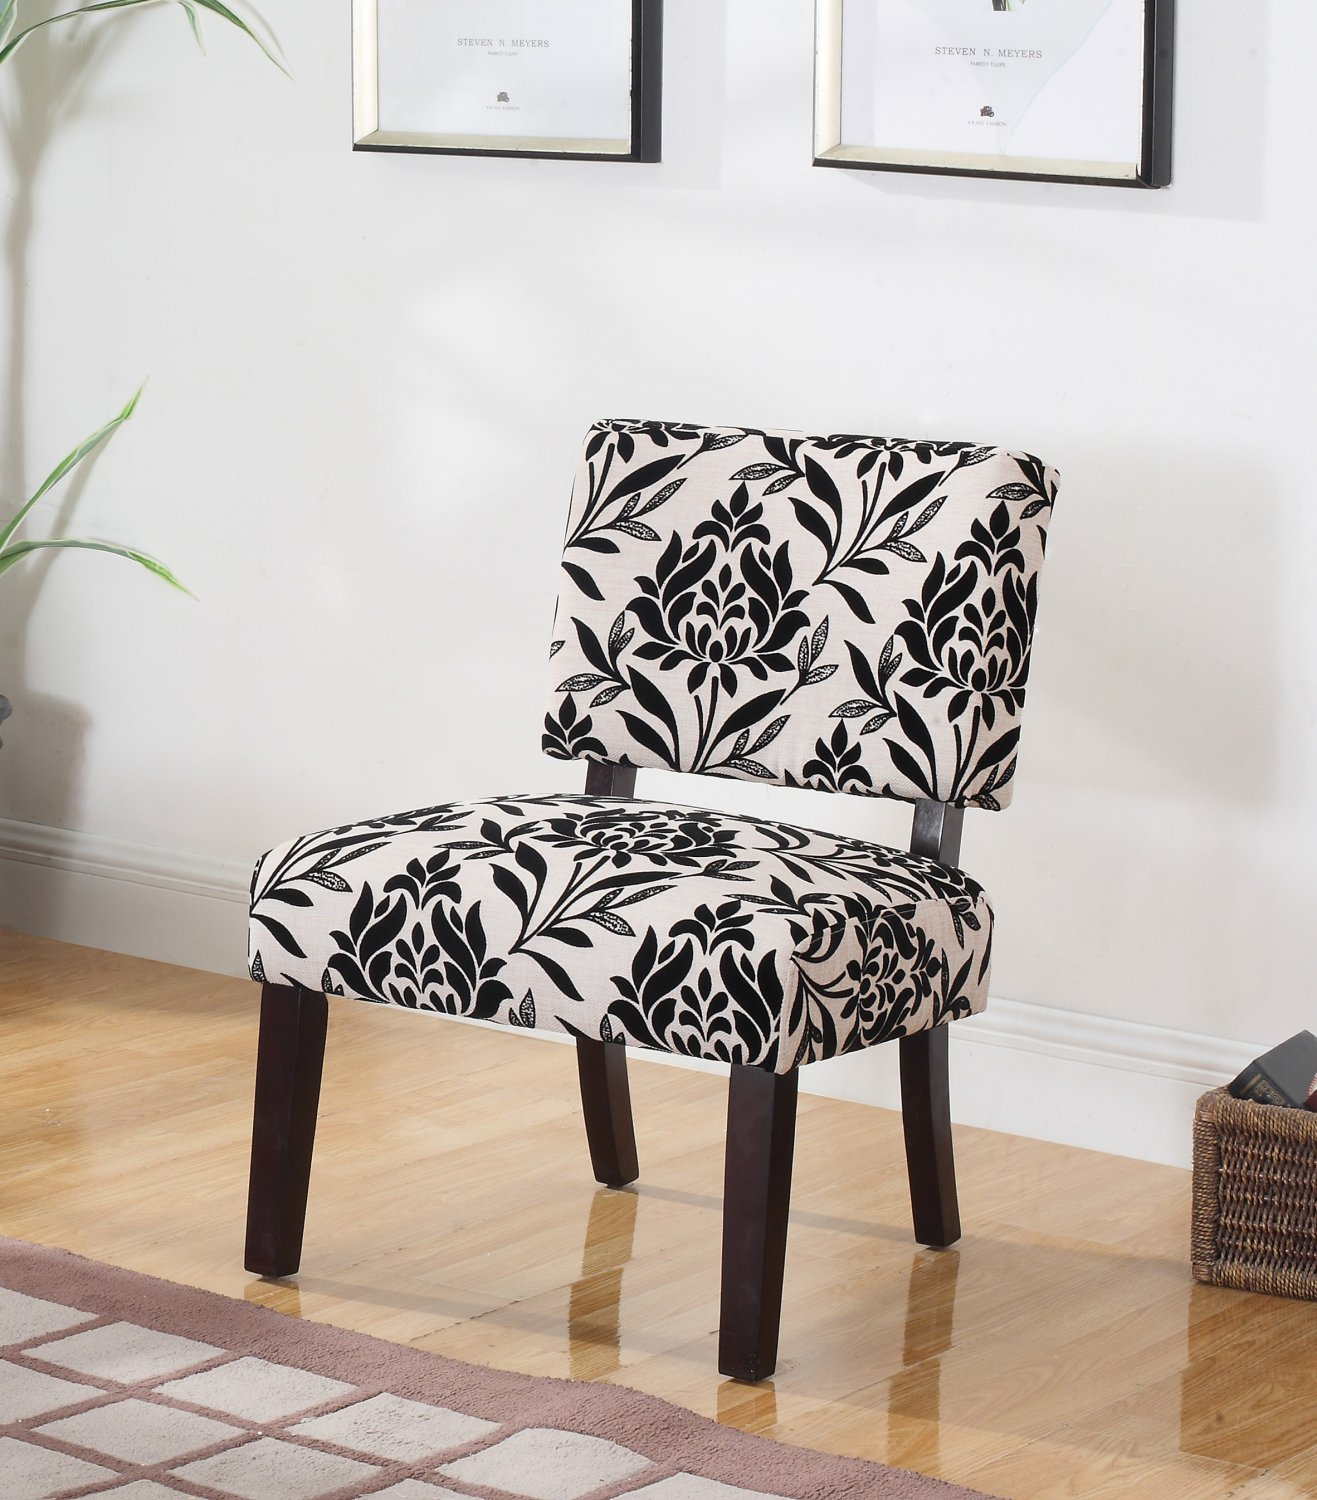 Y802 Willow Black Floral Upholstered Living Room Accent Chair